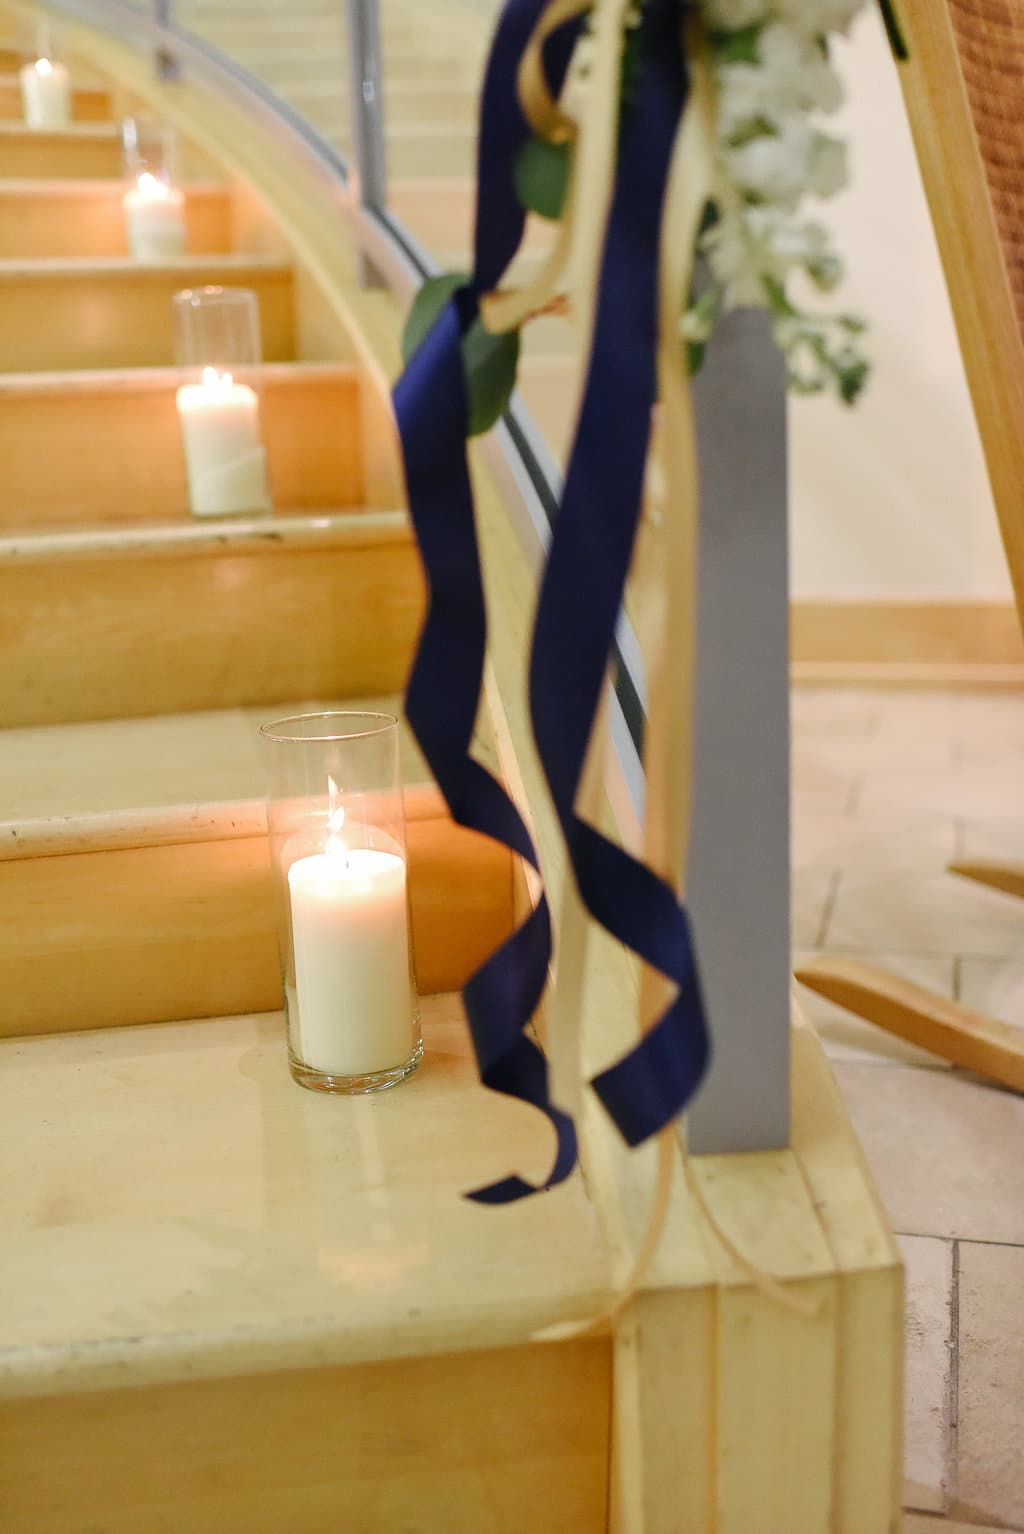 pillar candles lining the staircase at the Levine Museum of the New South